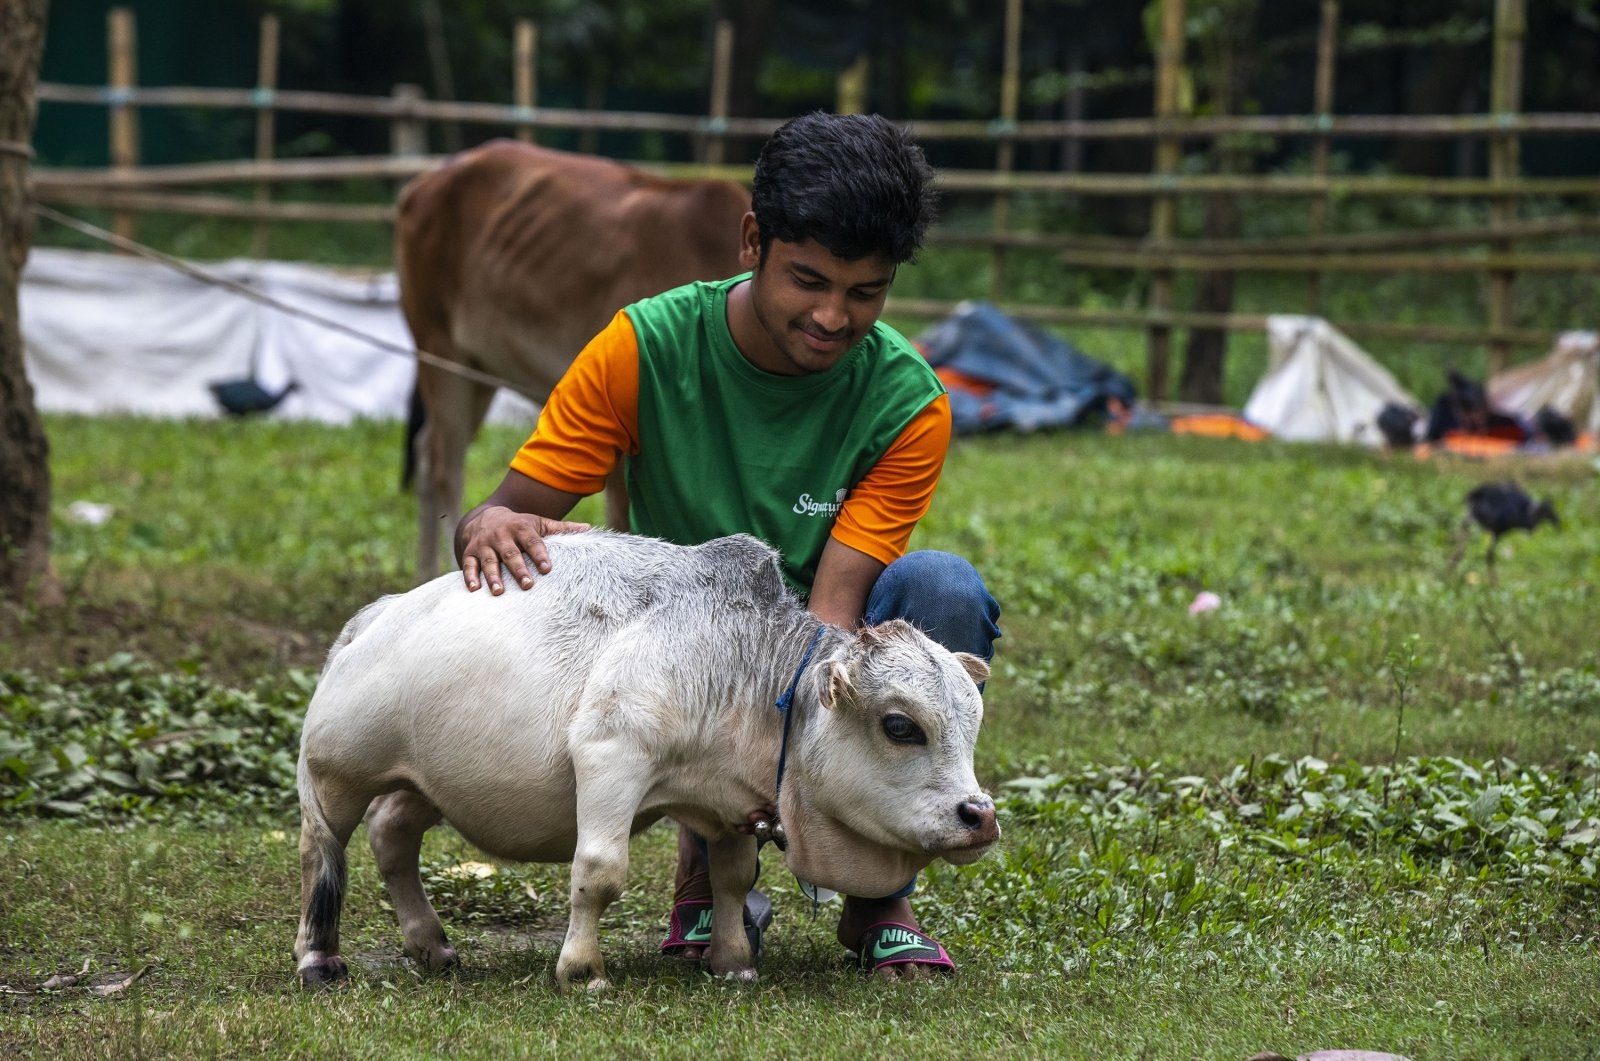 An attendant takes care of a dwarf cow named Rani, whose owners applied to the Guinness Book of Records claiming it to be the smallest cow in the world, at a cattle farm in Charigram, Bangladesh, July 7, 2021. (Getty Images)